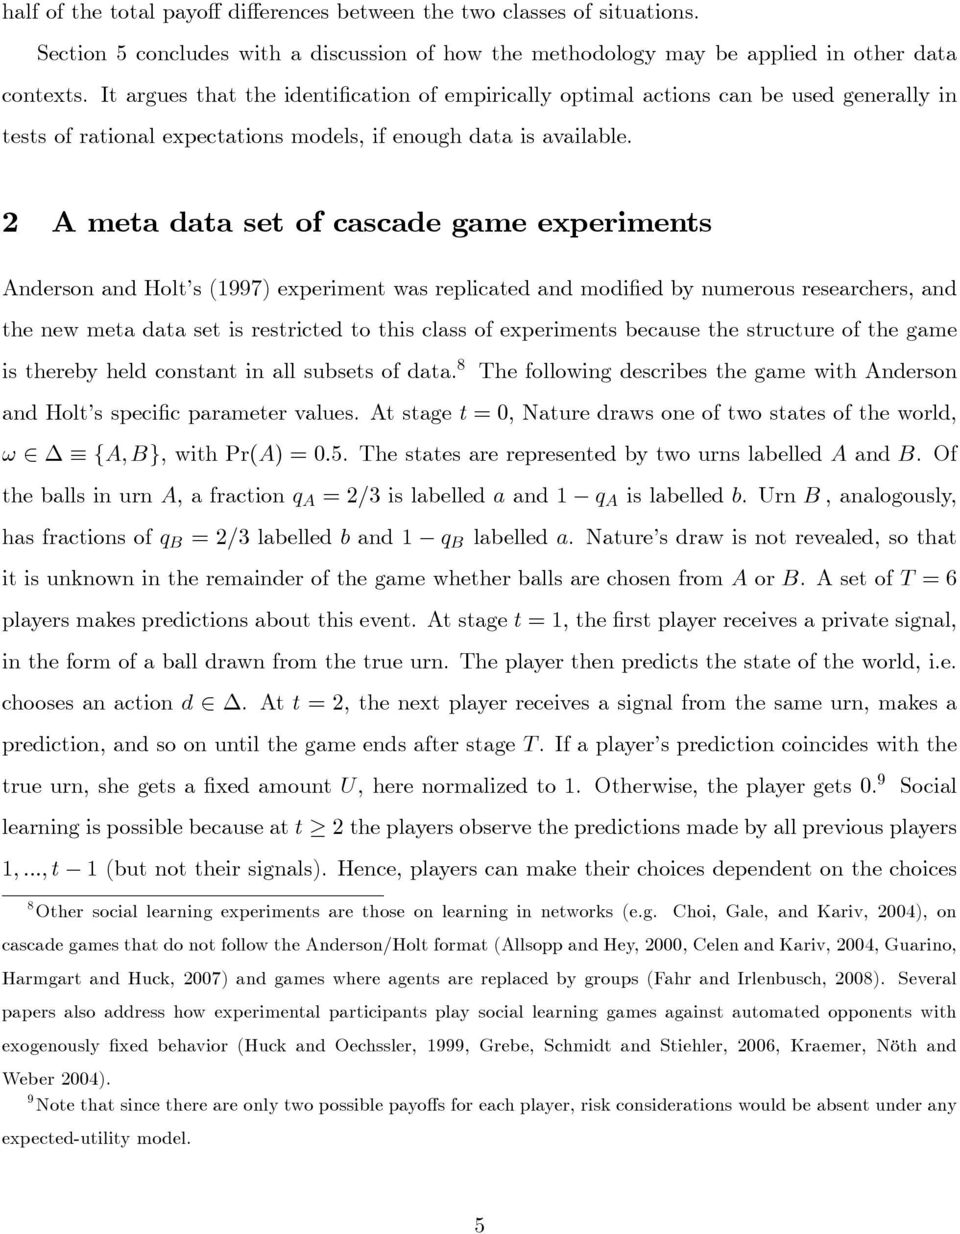 2 A meta data set of cascade game experiments Anderson and Holt s (1997) experiment was replicated and modi ed by numerous researchers, and the new meta data set is restricted to this class of